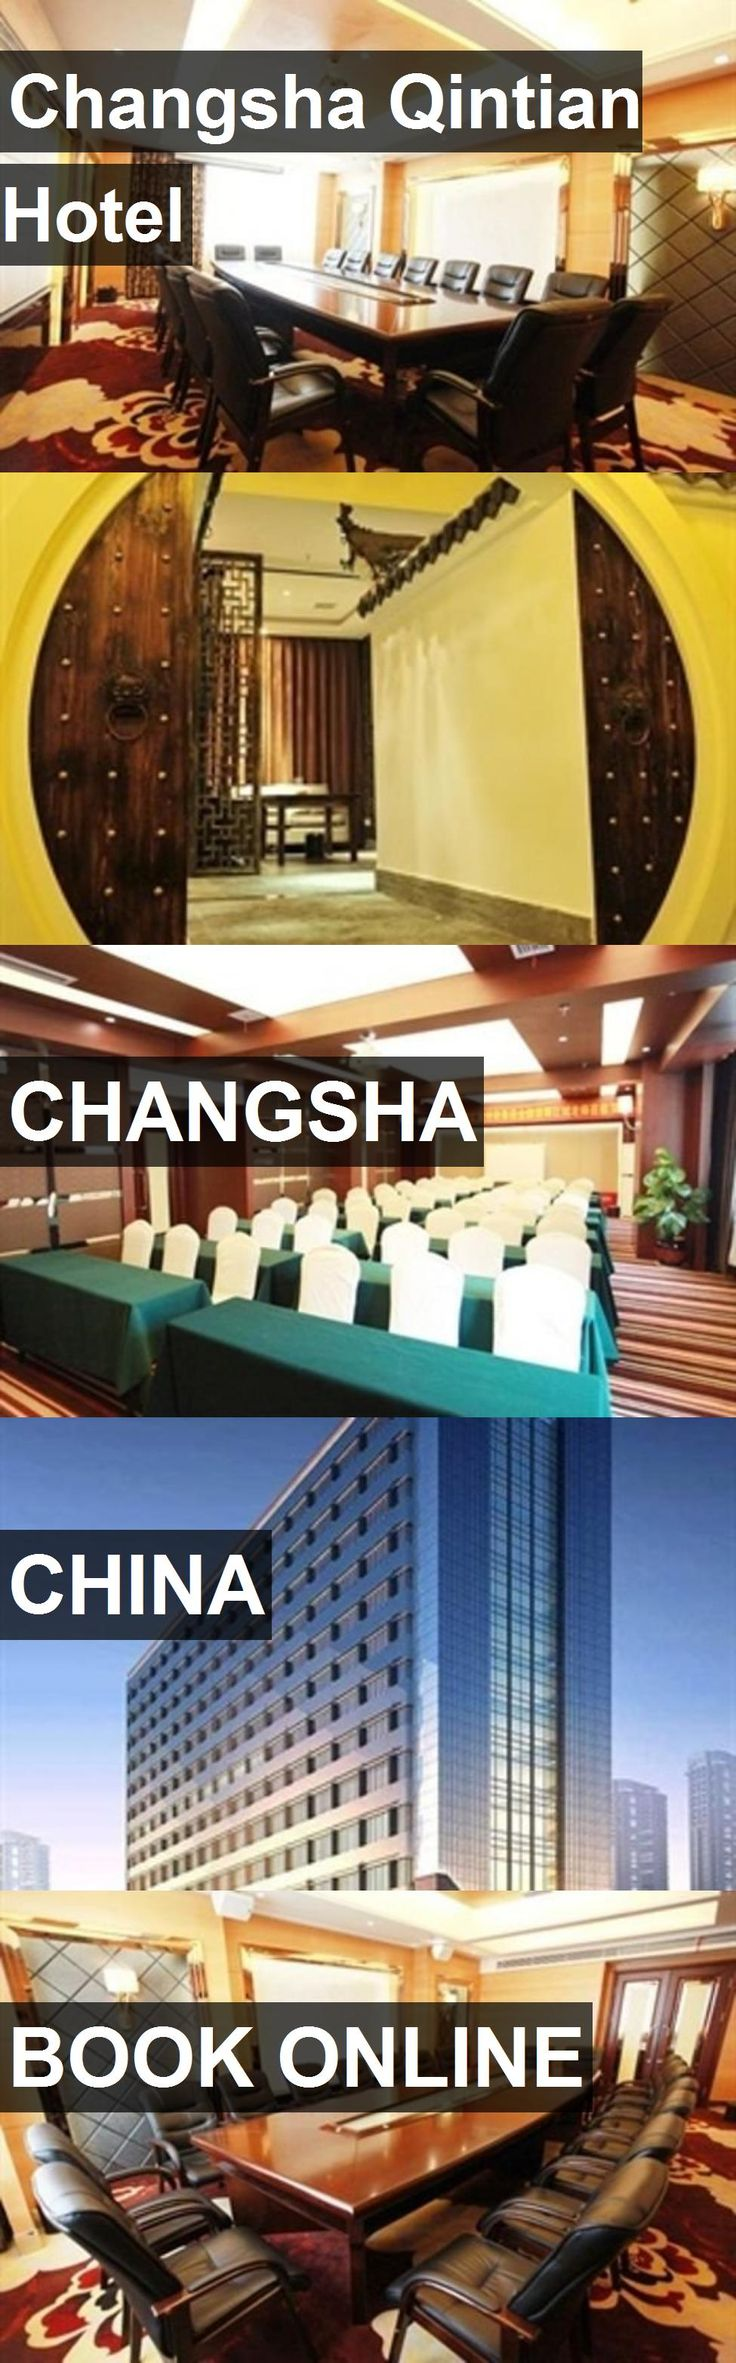 Hotel Changsha Qintian Hotel in Changsha, China. For more information, photos, reviews and best prices please follow the link. #China #Changsha #ChangshaQintianHotel #hotel #travel #vacation